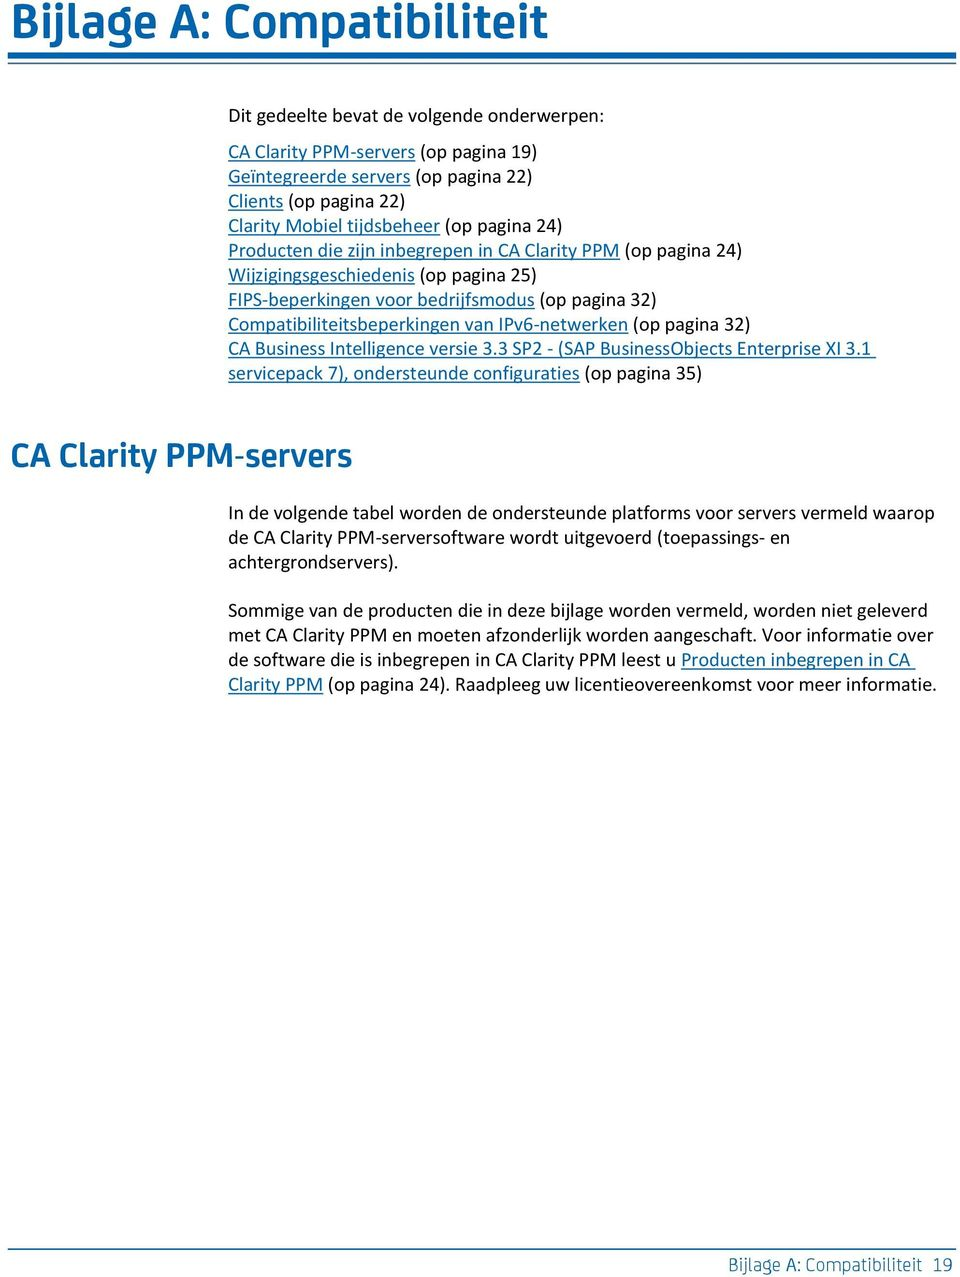 IPv6-netwerken (op pagina 32) CA Business Intelligence versie 3.3 SP2 - (SAP BusinessObjects Enterprise XI 3.